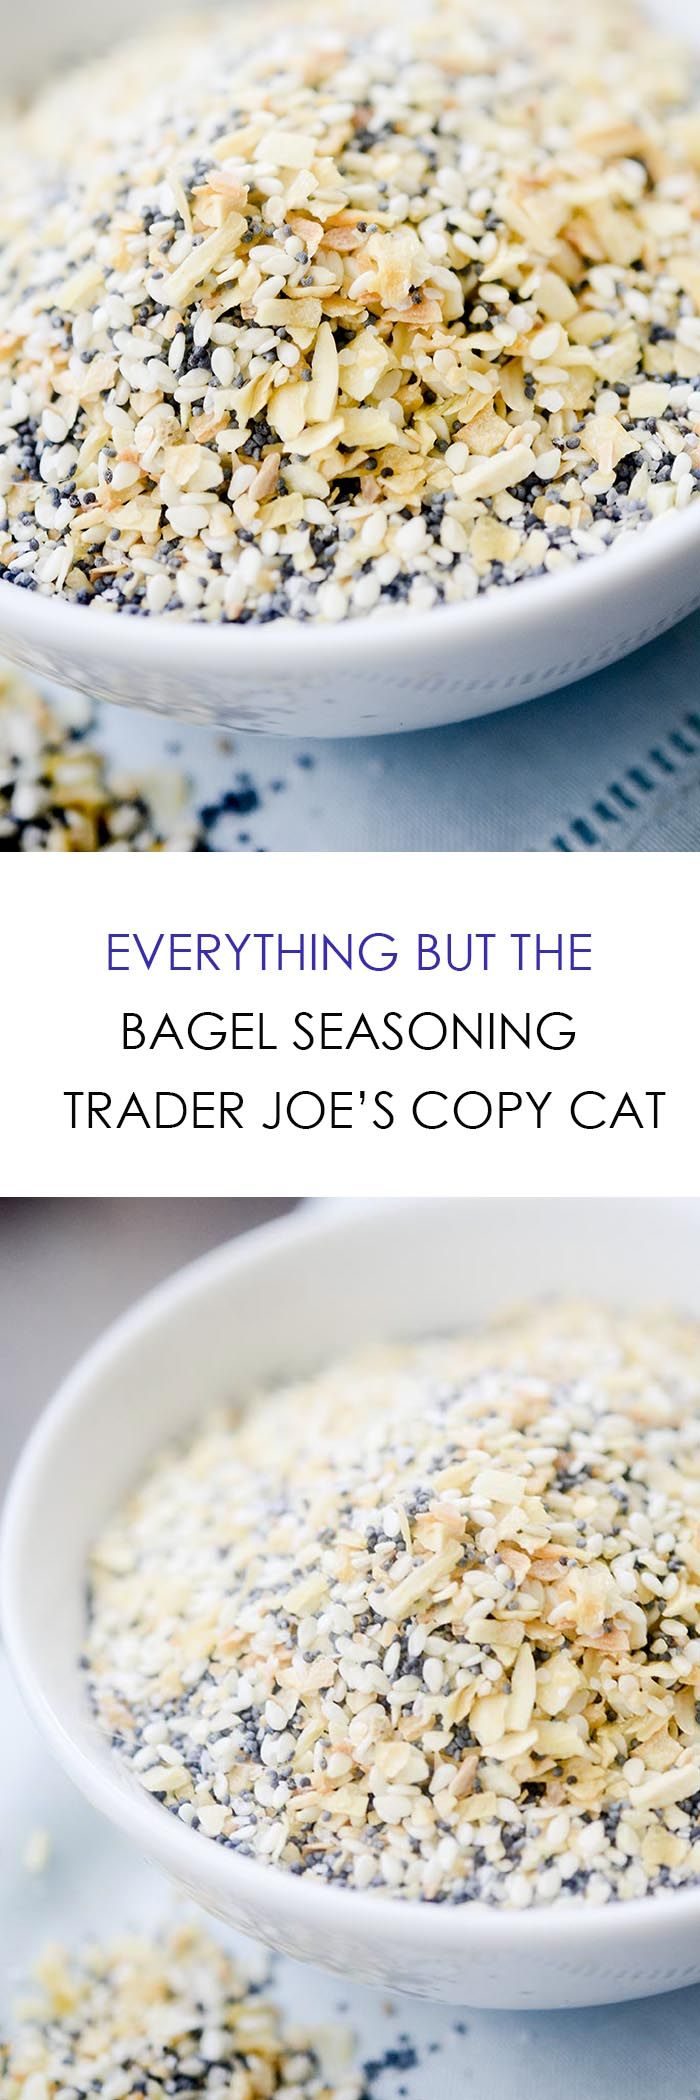 Everything but the Bagel Seasoning - Trader Joe's Copy Cat - Recipe Diaries